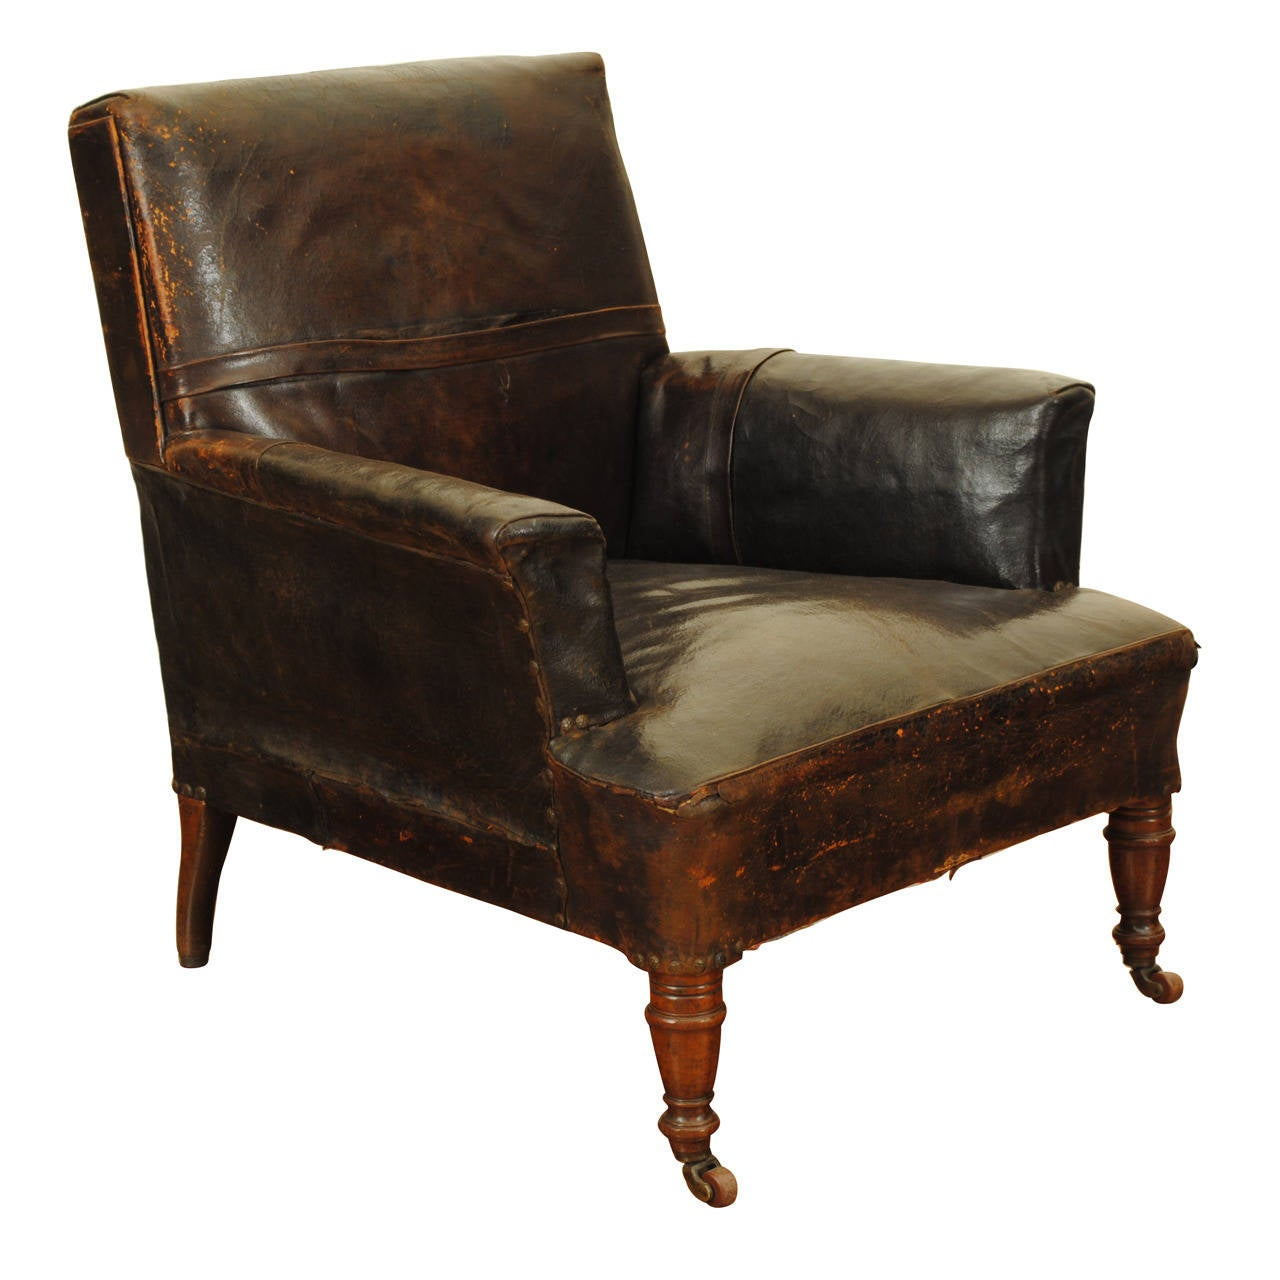 Luxury Leather Chairs english william iv walnut and leather upholstered club chair at